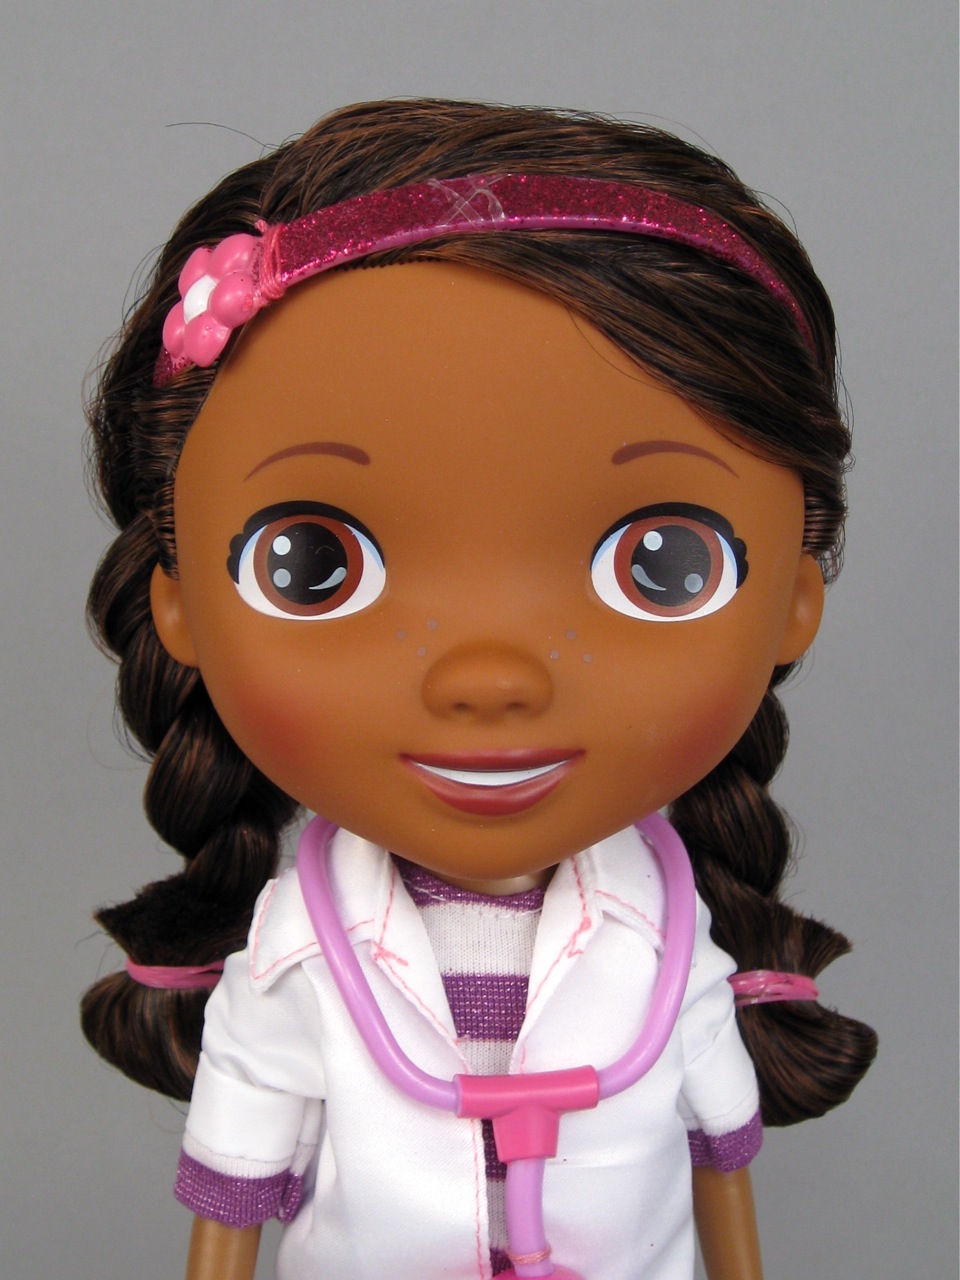 Doc McStuffins doll by Just Play